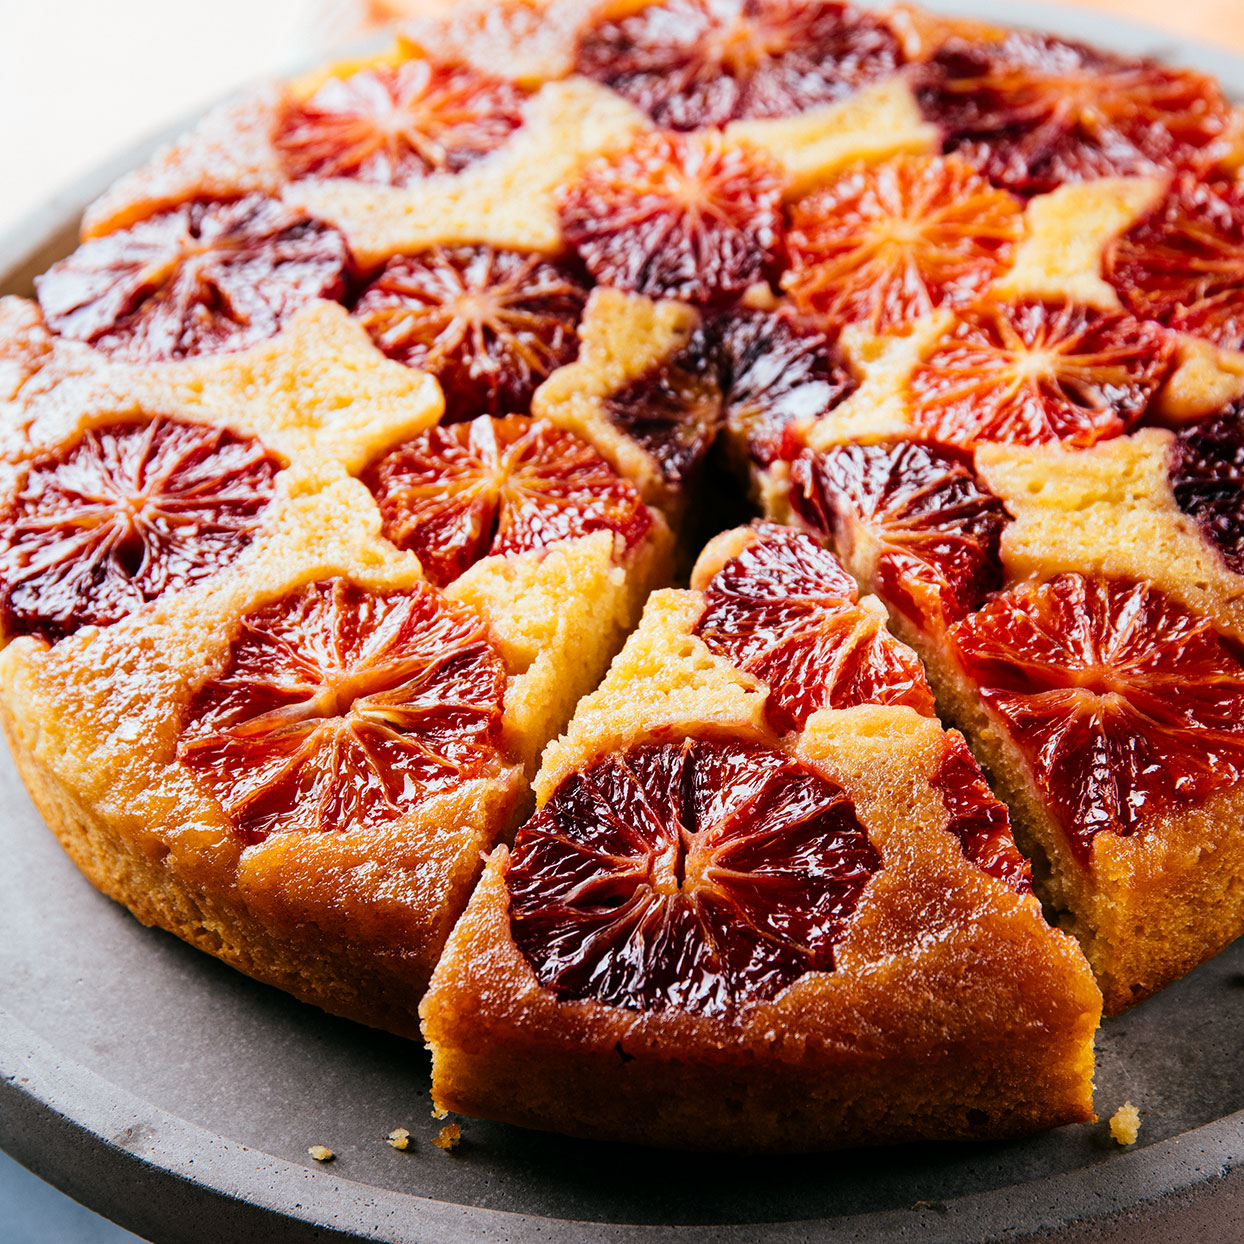 Blood Orange Upside-Down Cake Judith Fertig